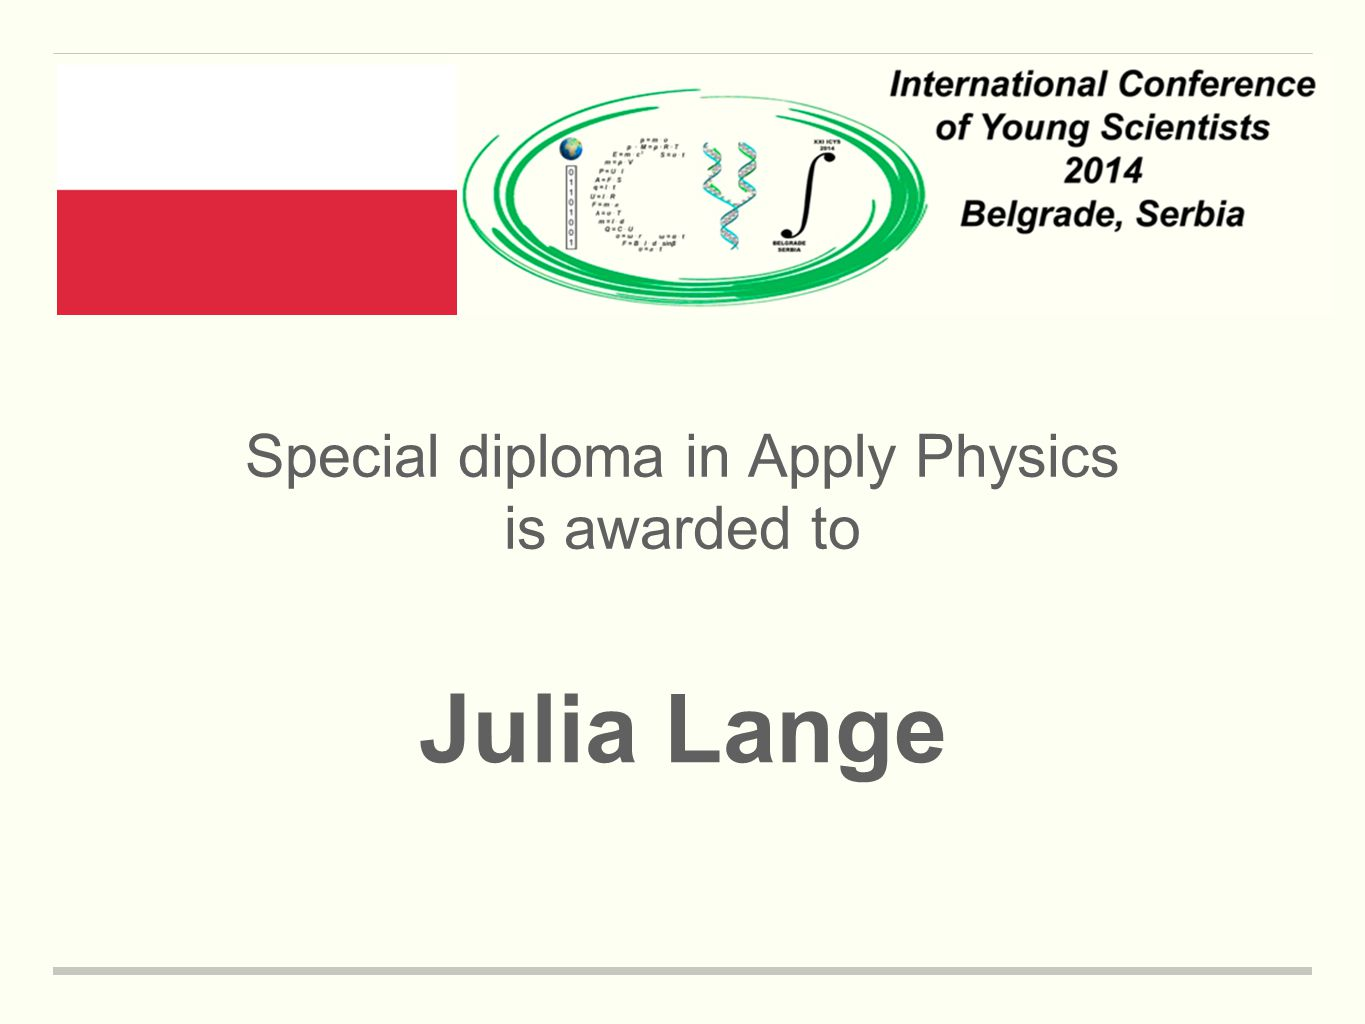 Special diploma in Apply Physics is awarded to Julia Lange